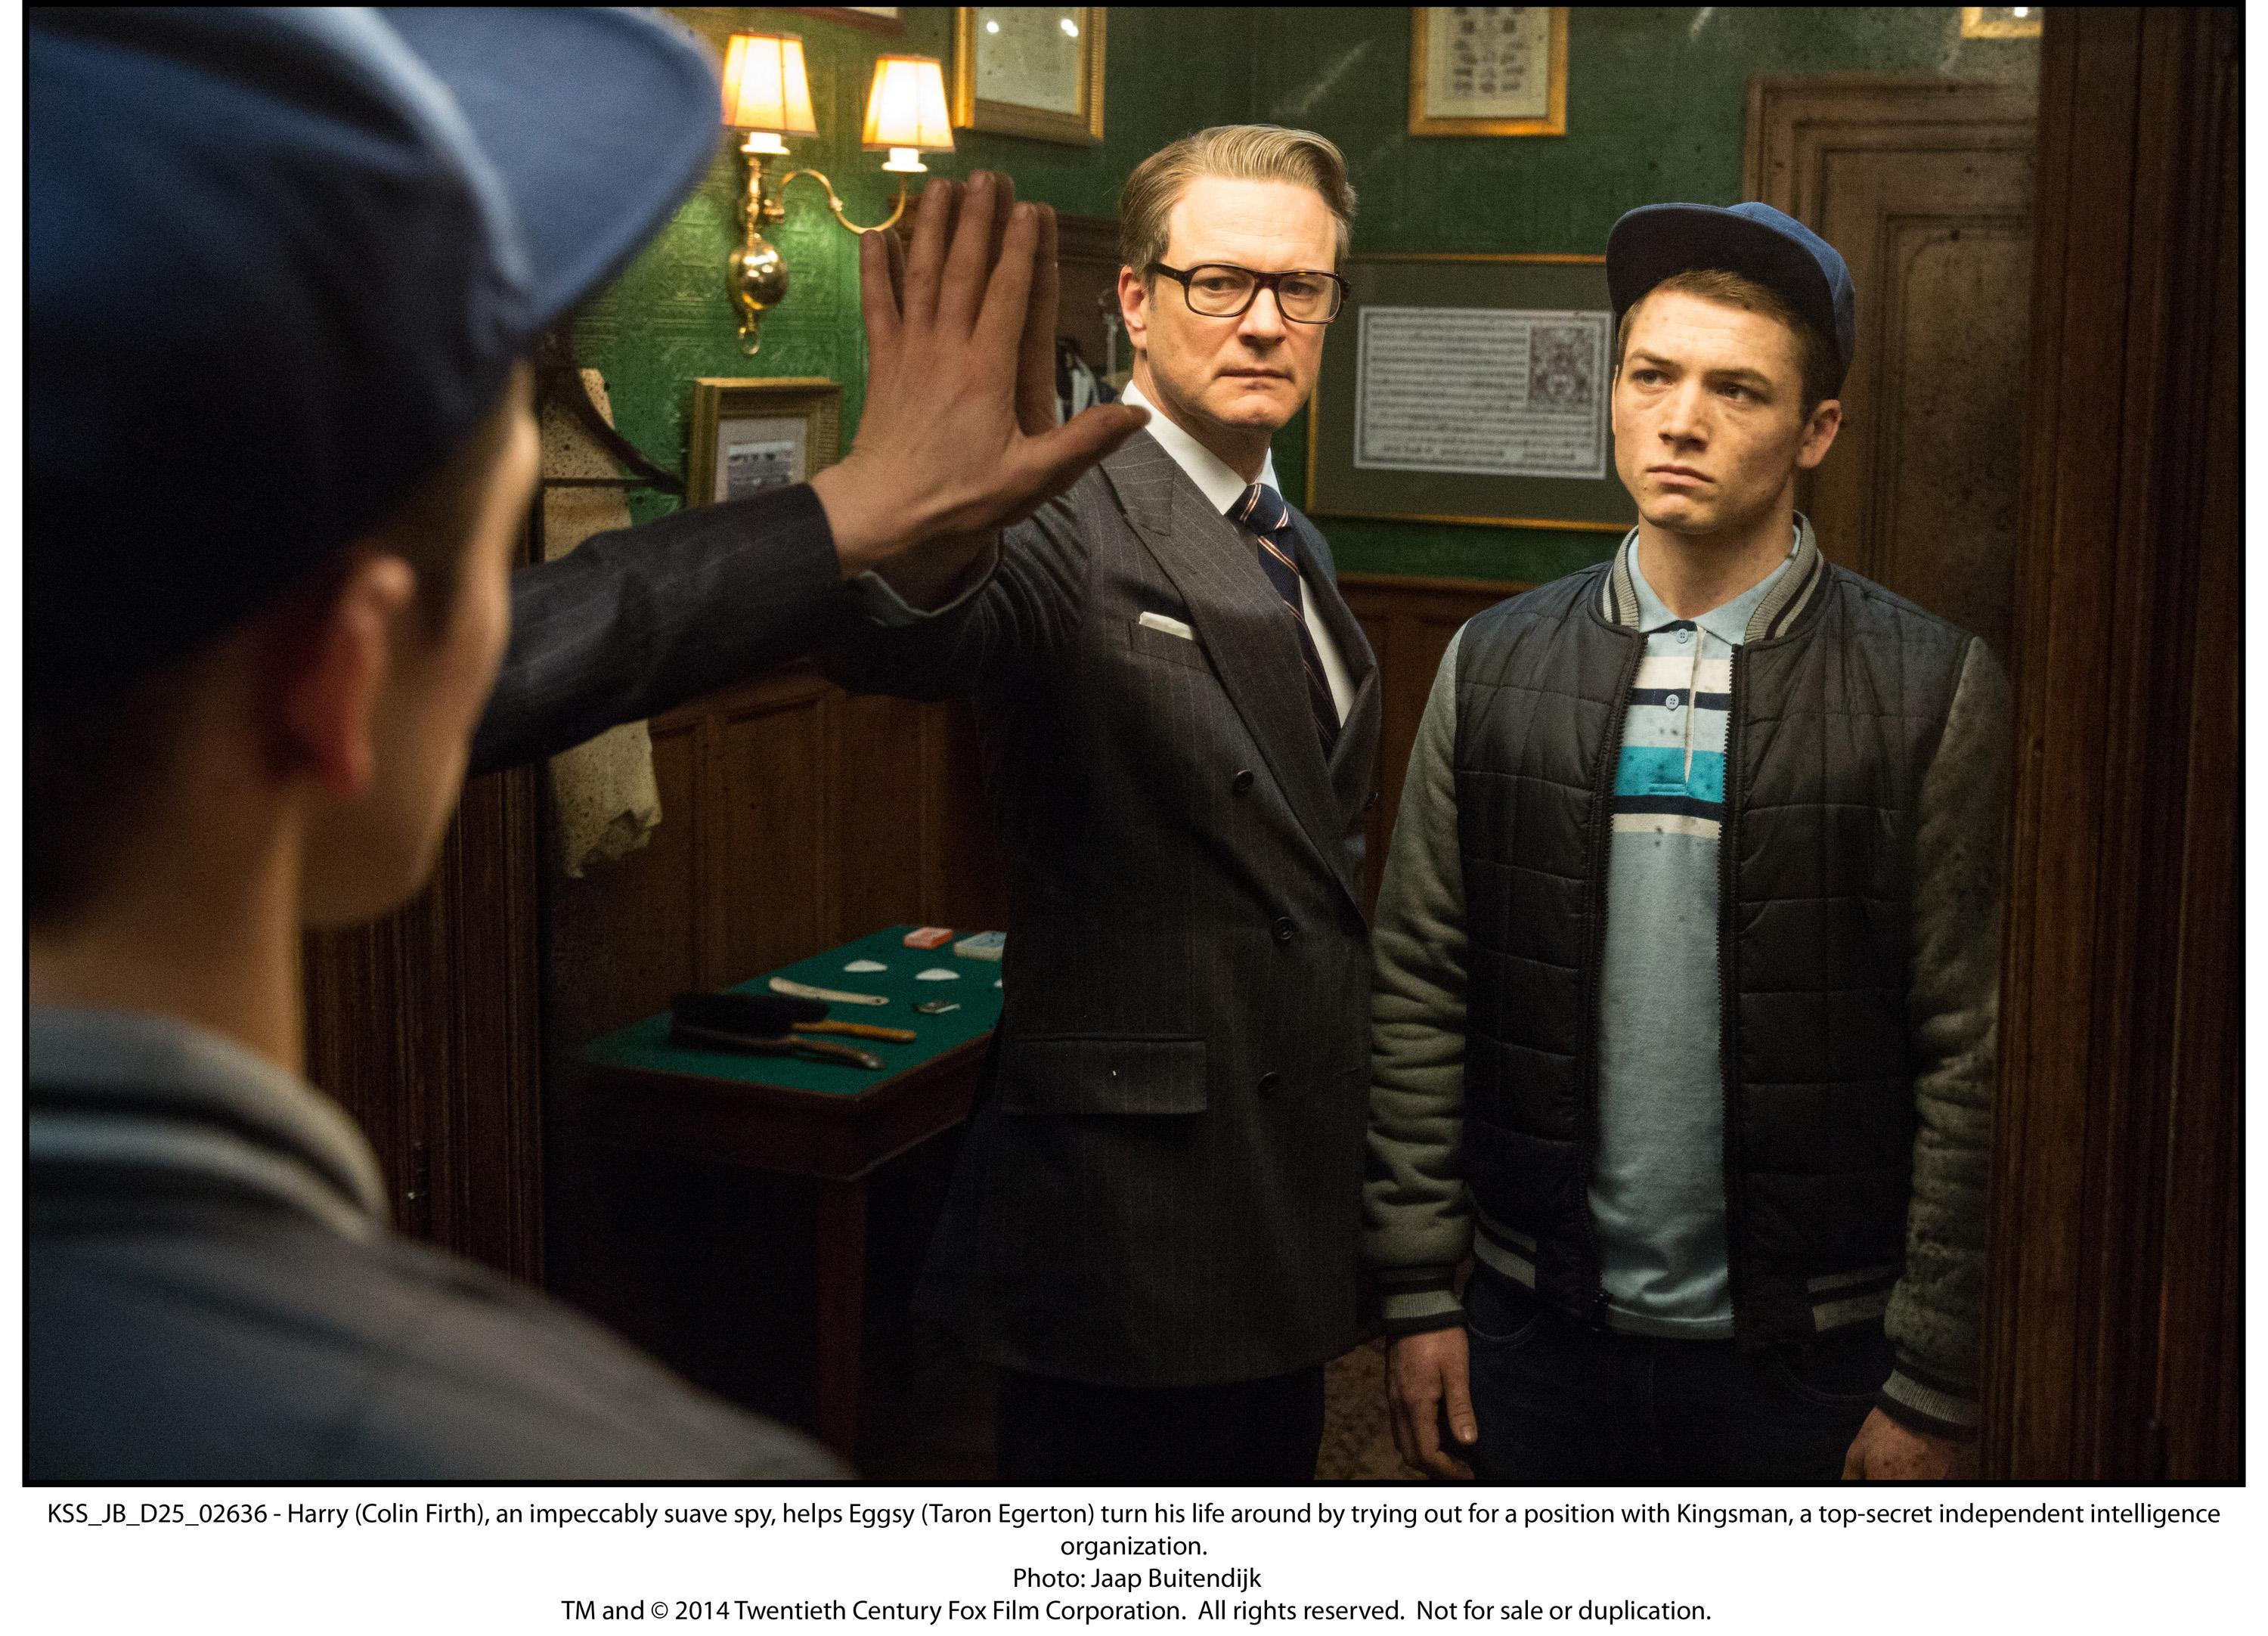 The not-so-secret conservative politics of the Kingsman movies